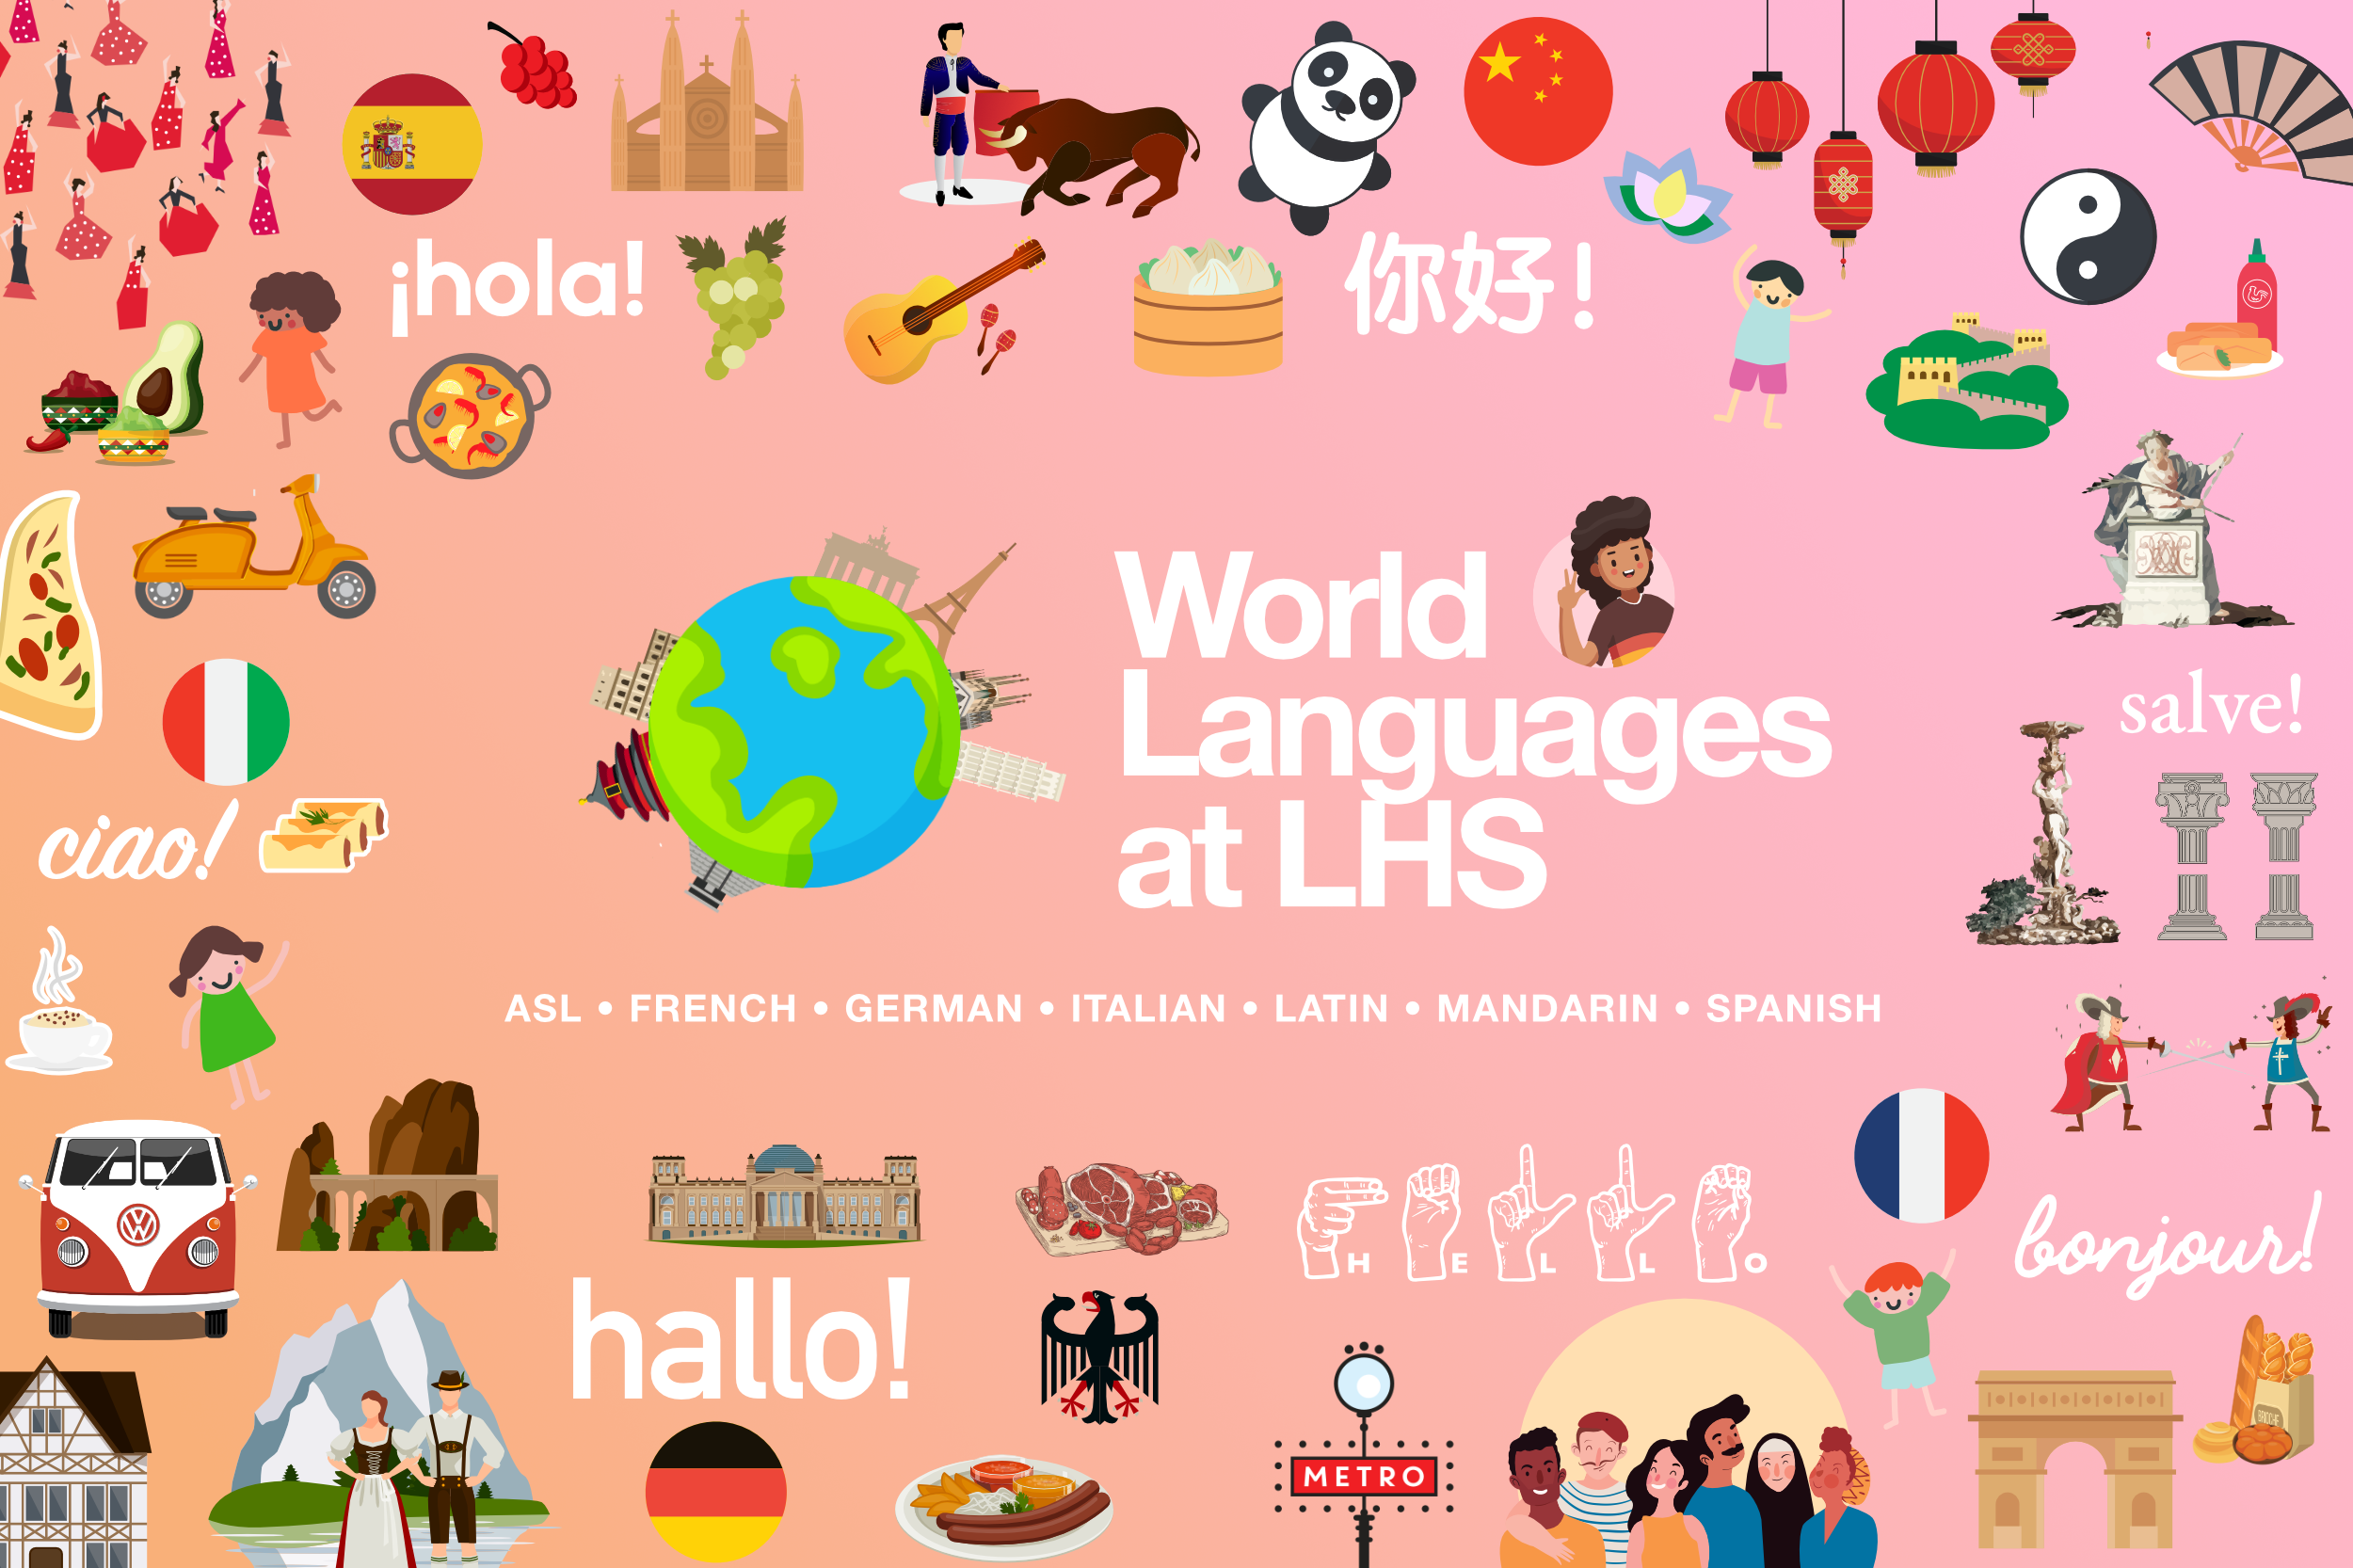 World Languages at LHS